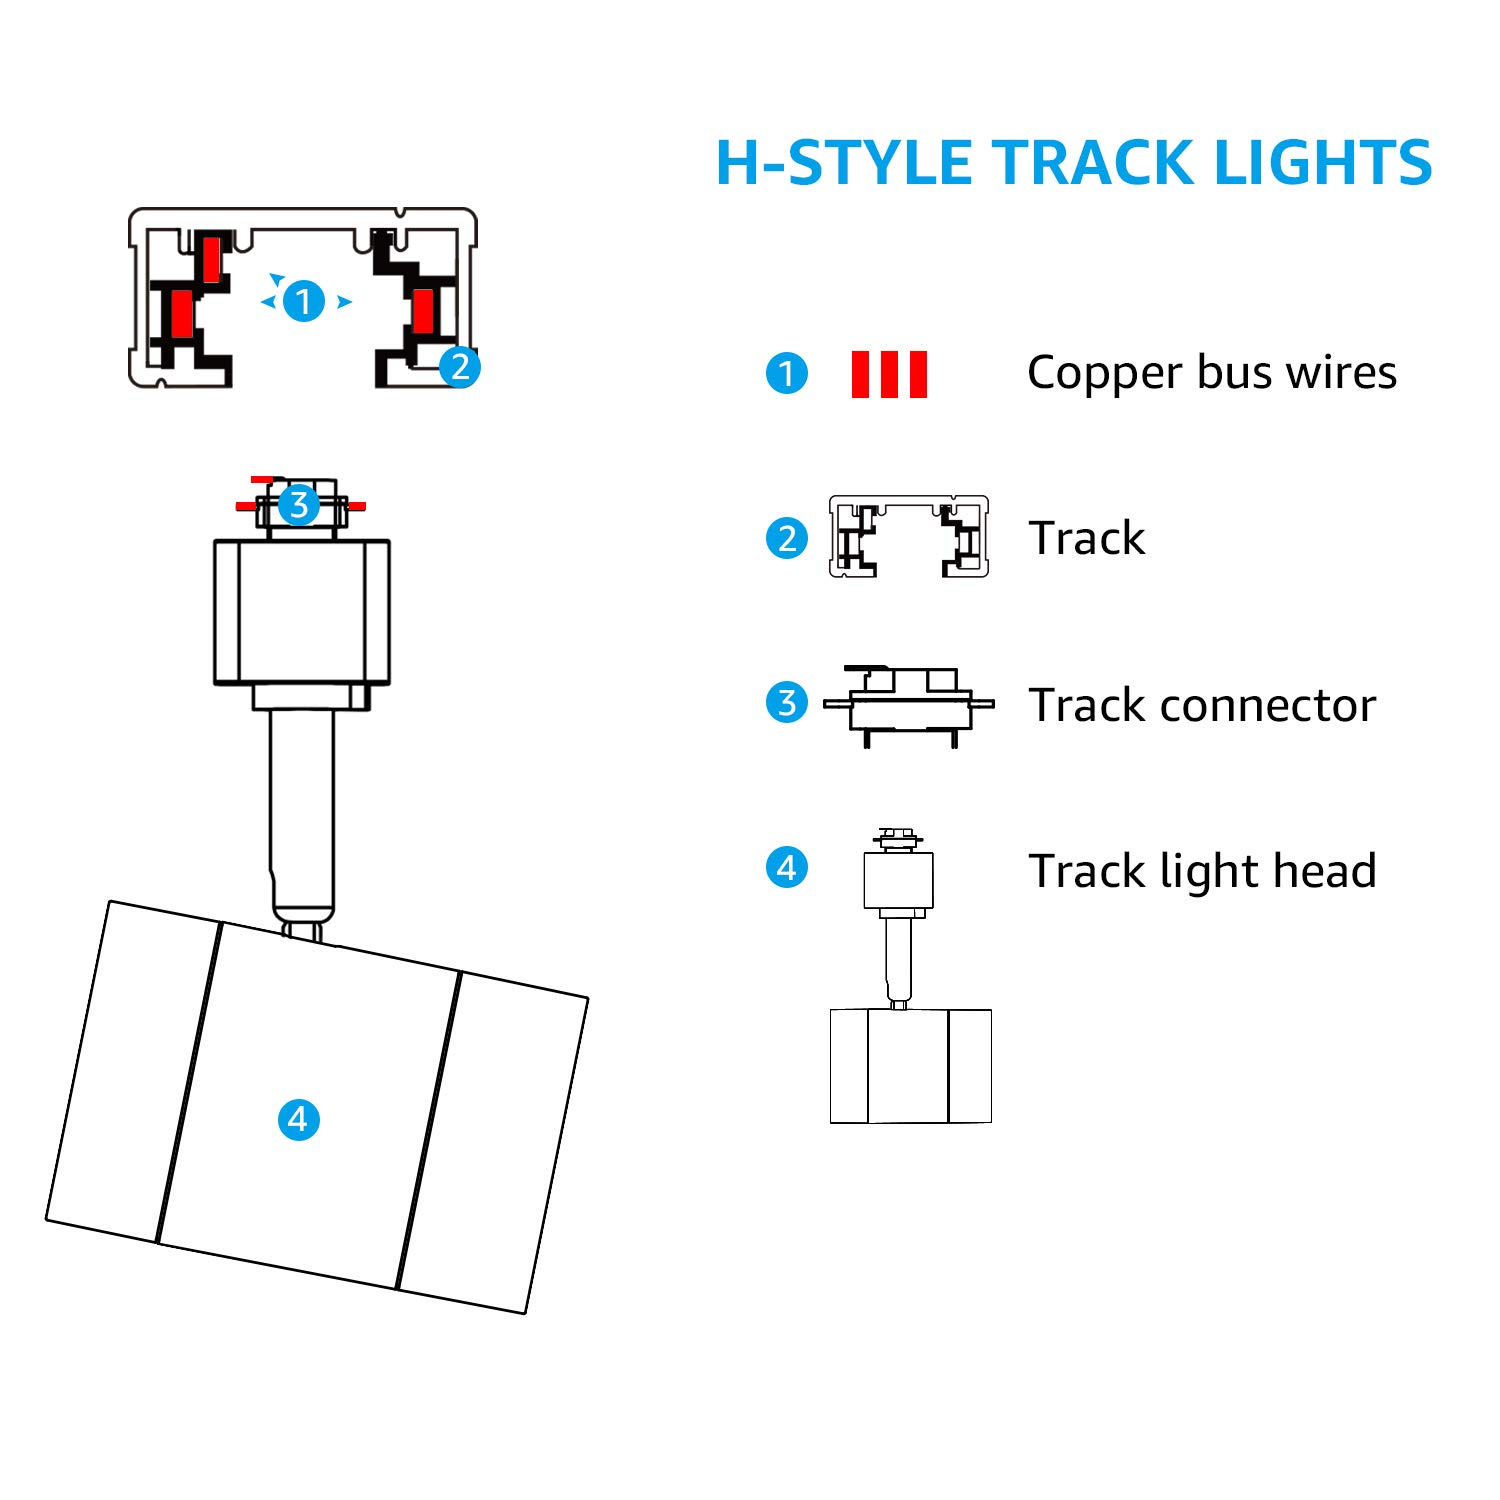 Integrated CRI90+ LED White Track Light Head 2700K Soft White LEONLITE 8.5W 500lm Energy Star /& ETL Listed for Wall Art Exhibition Lighting 50W Eqv. Dimmable 38/° Spotlight Track Light